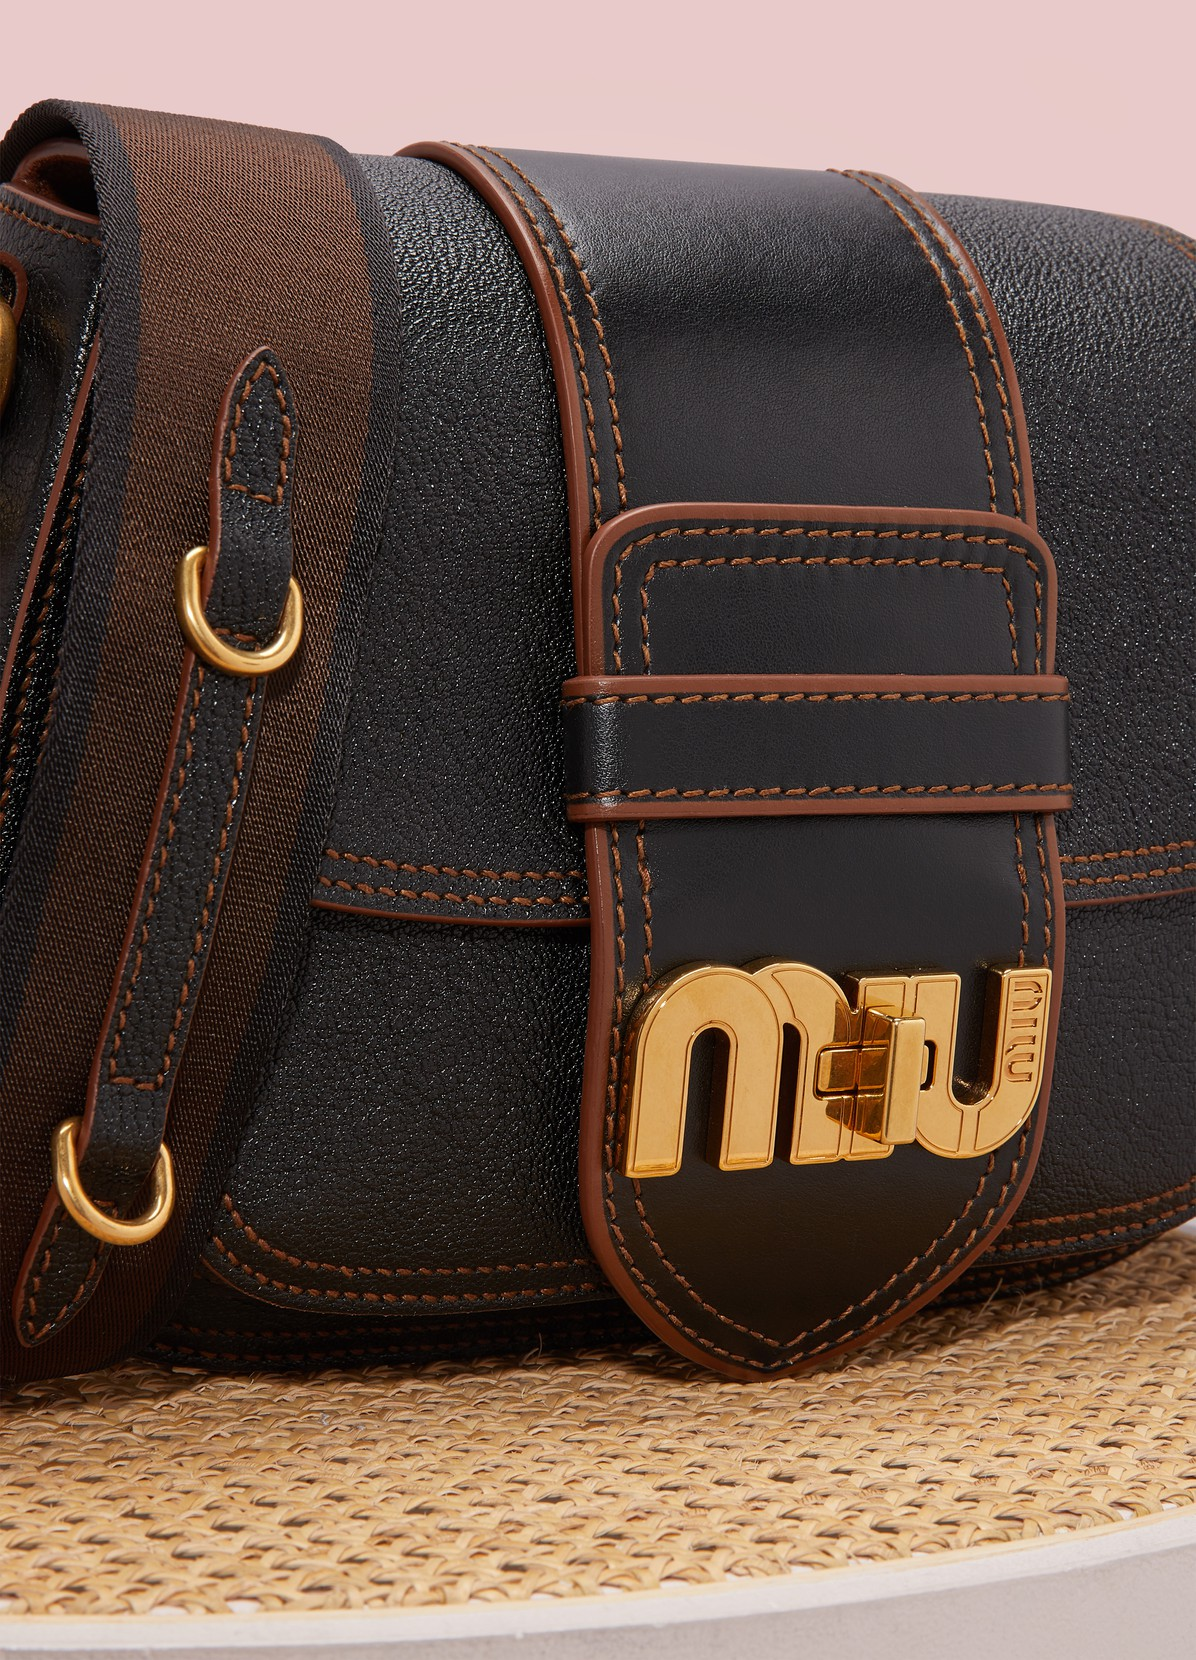 Miu Miu Bags For Sale Philippines